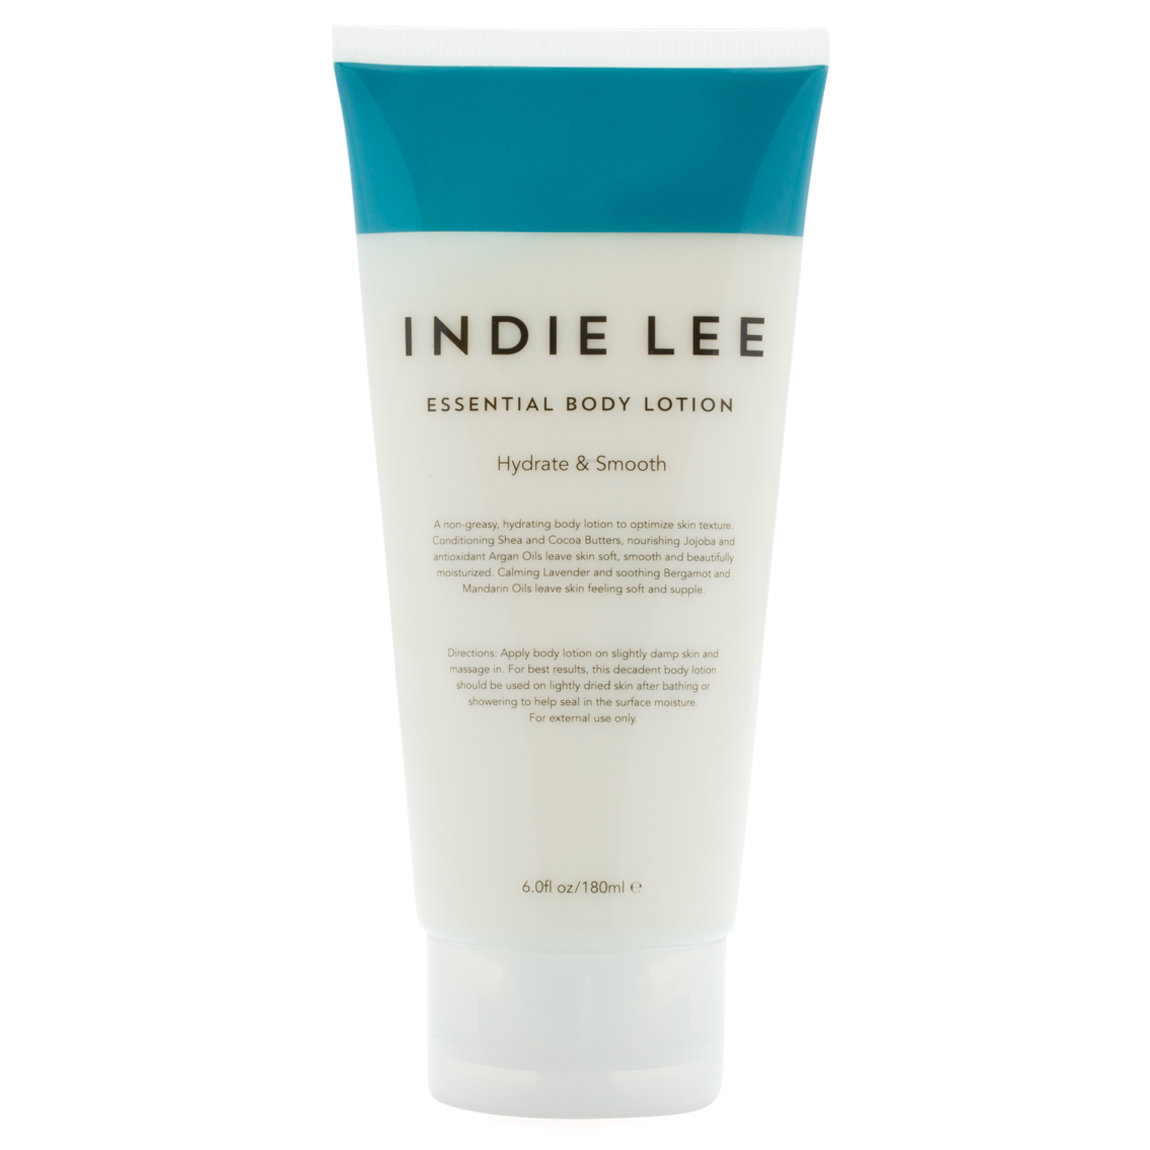 Indie Lee Essential Body Lotion 180 ml product swatch.